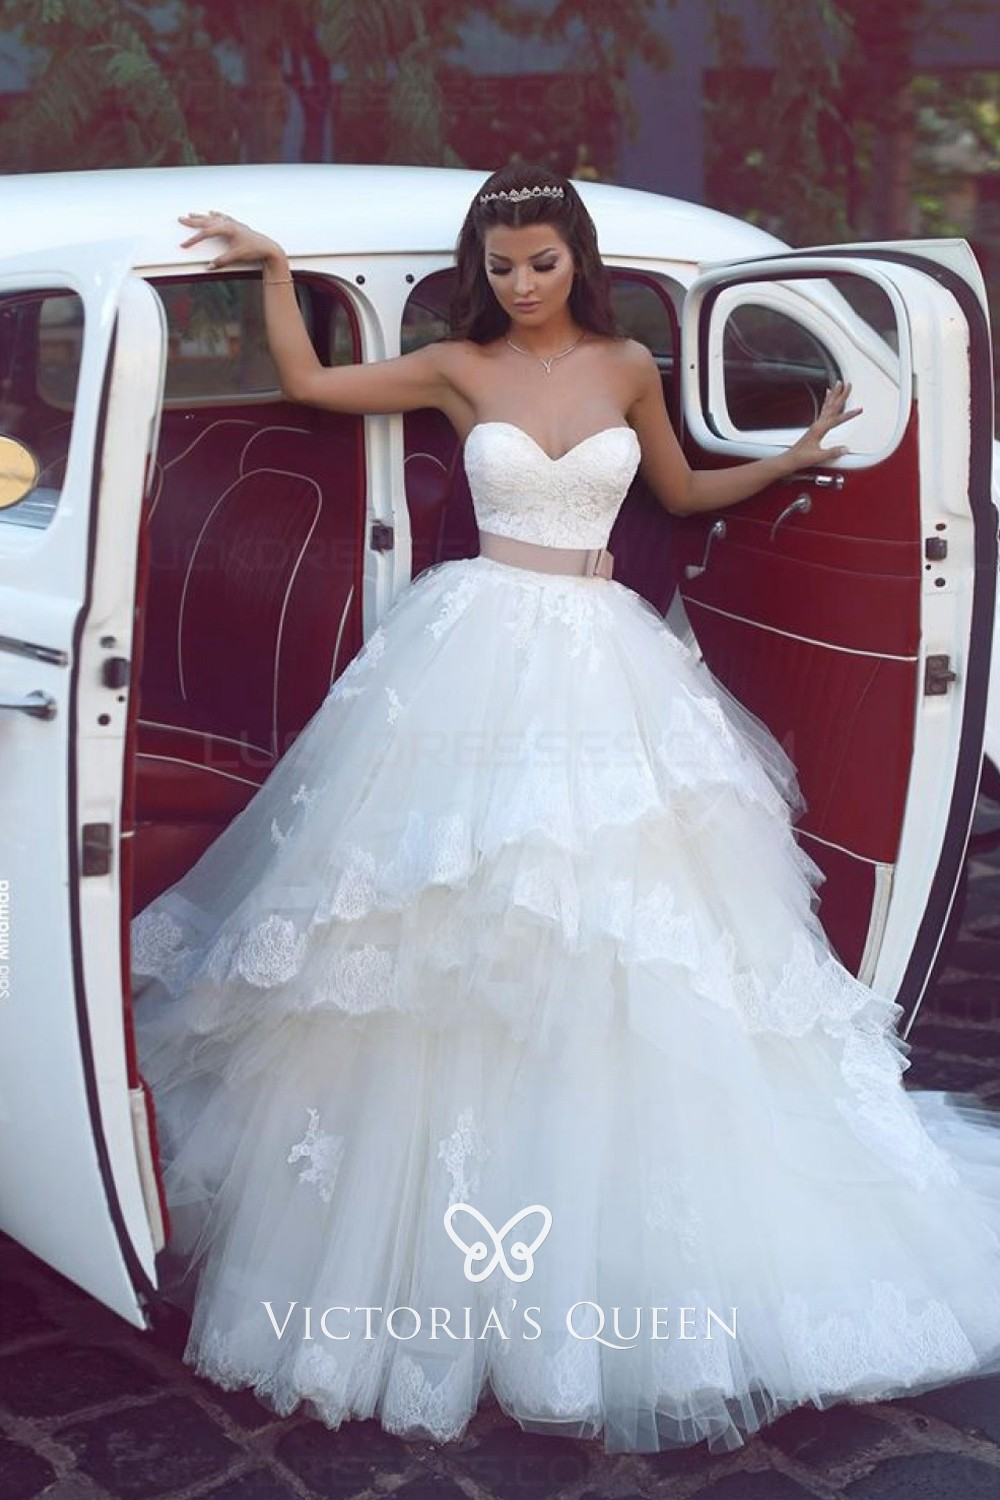 Strapless Lace Tulle Princess Ball Gown Wedding Dress Vq